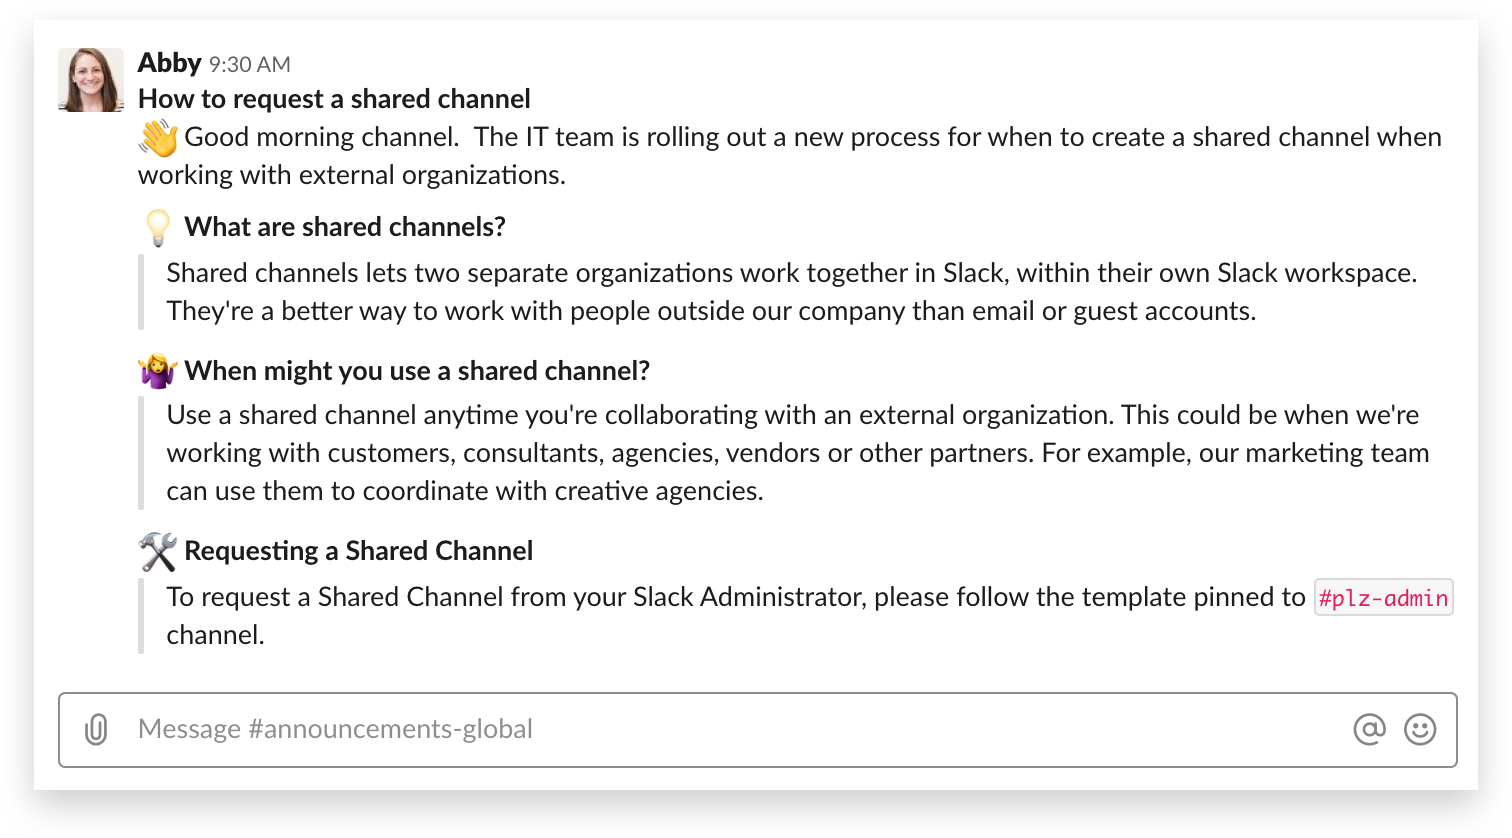 Announcing shared channels to your org